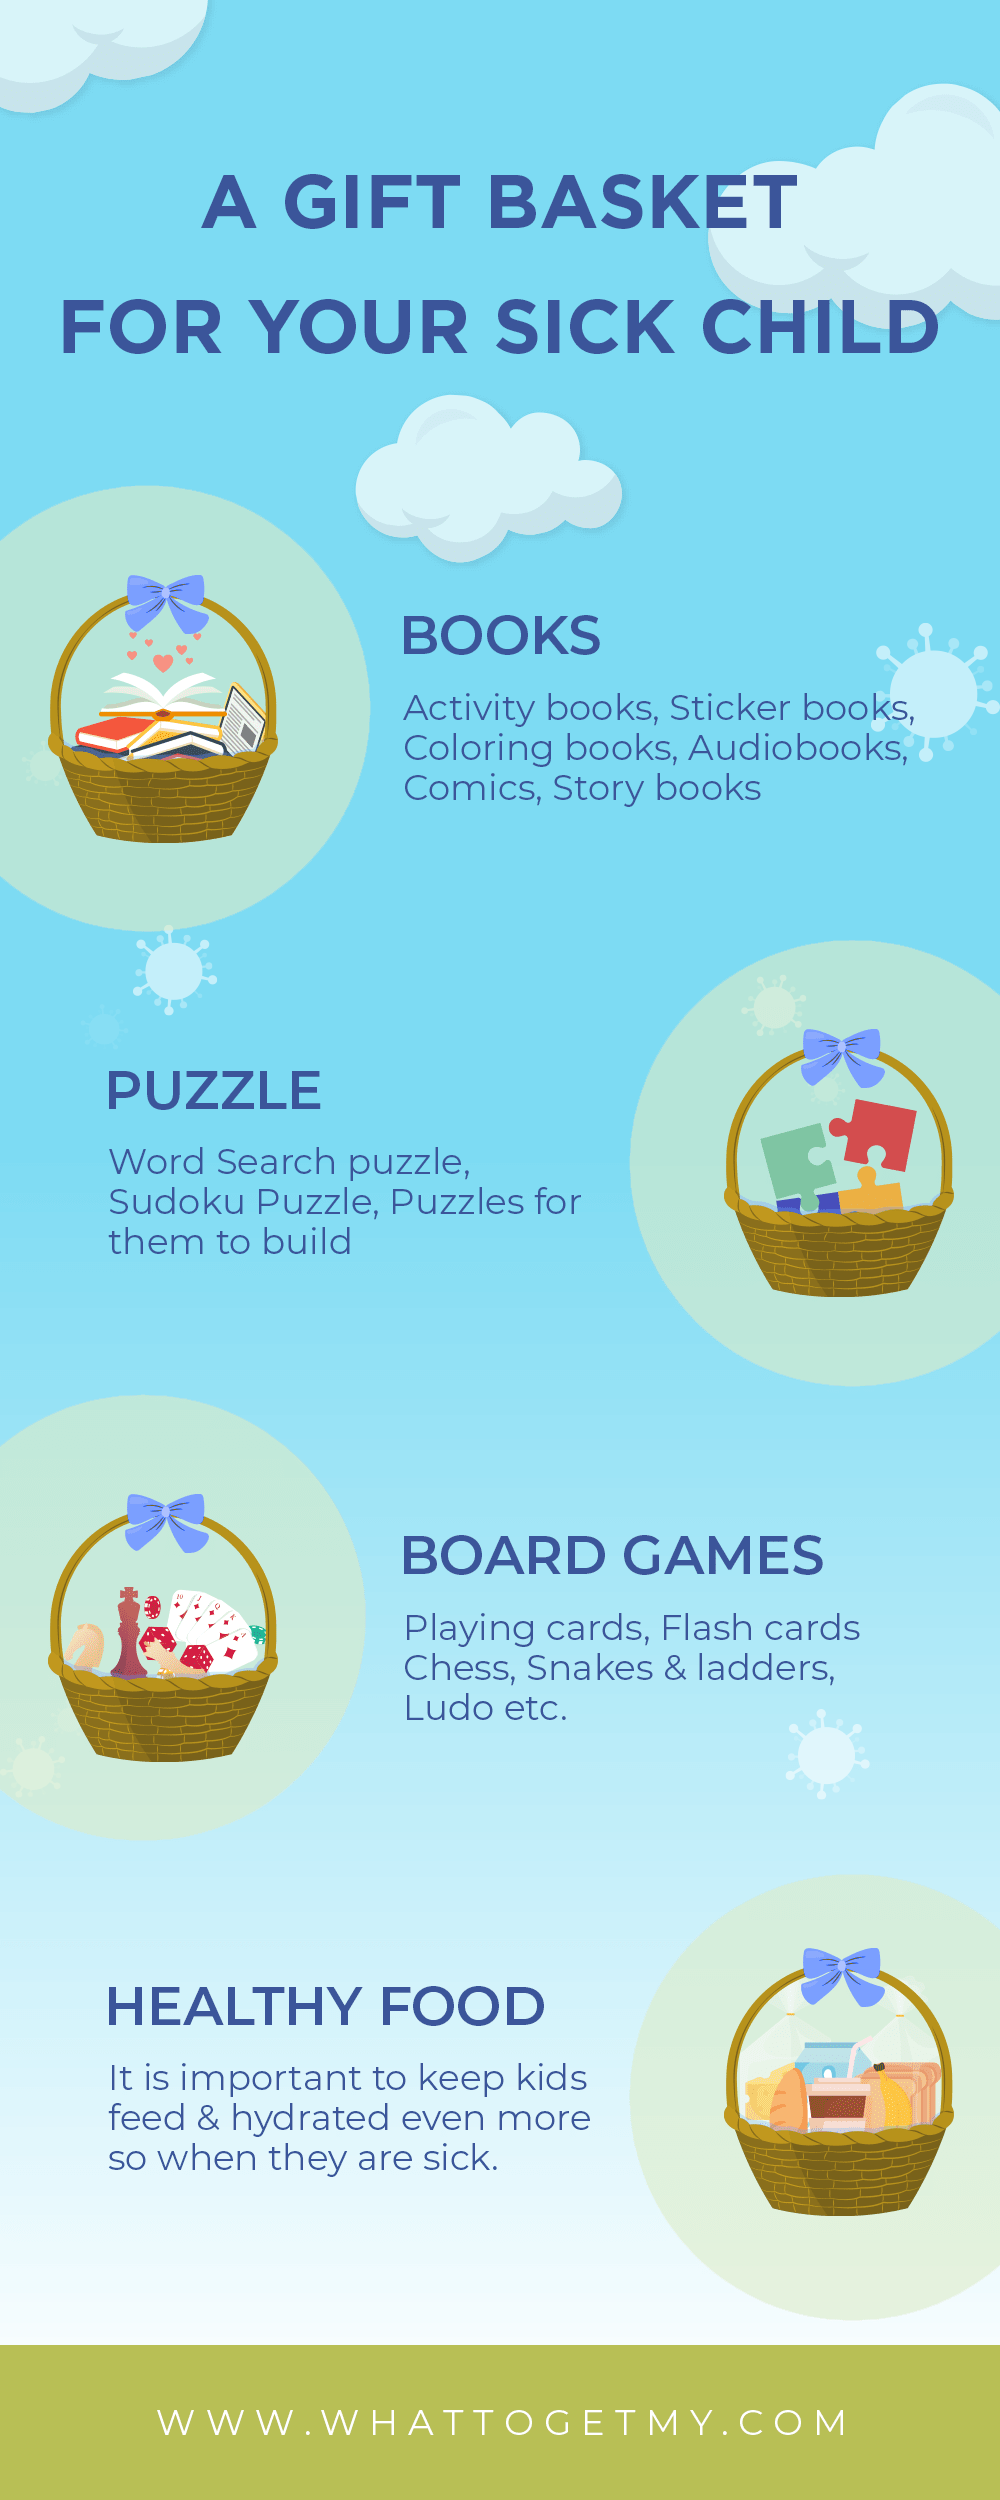 Infographic A GIFT BASKET FOR YOUR SICK CHILD